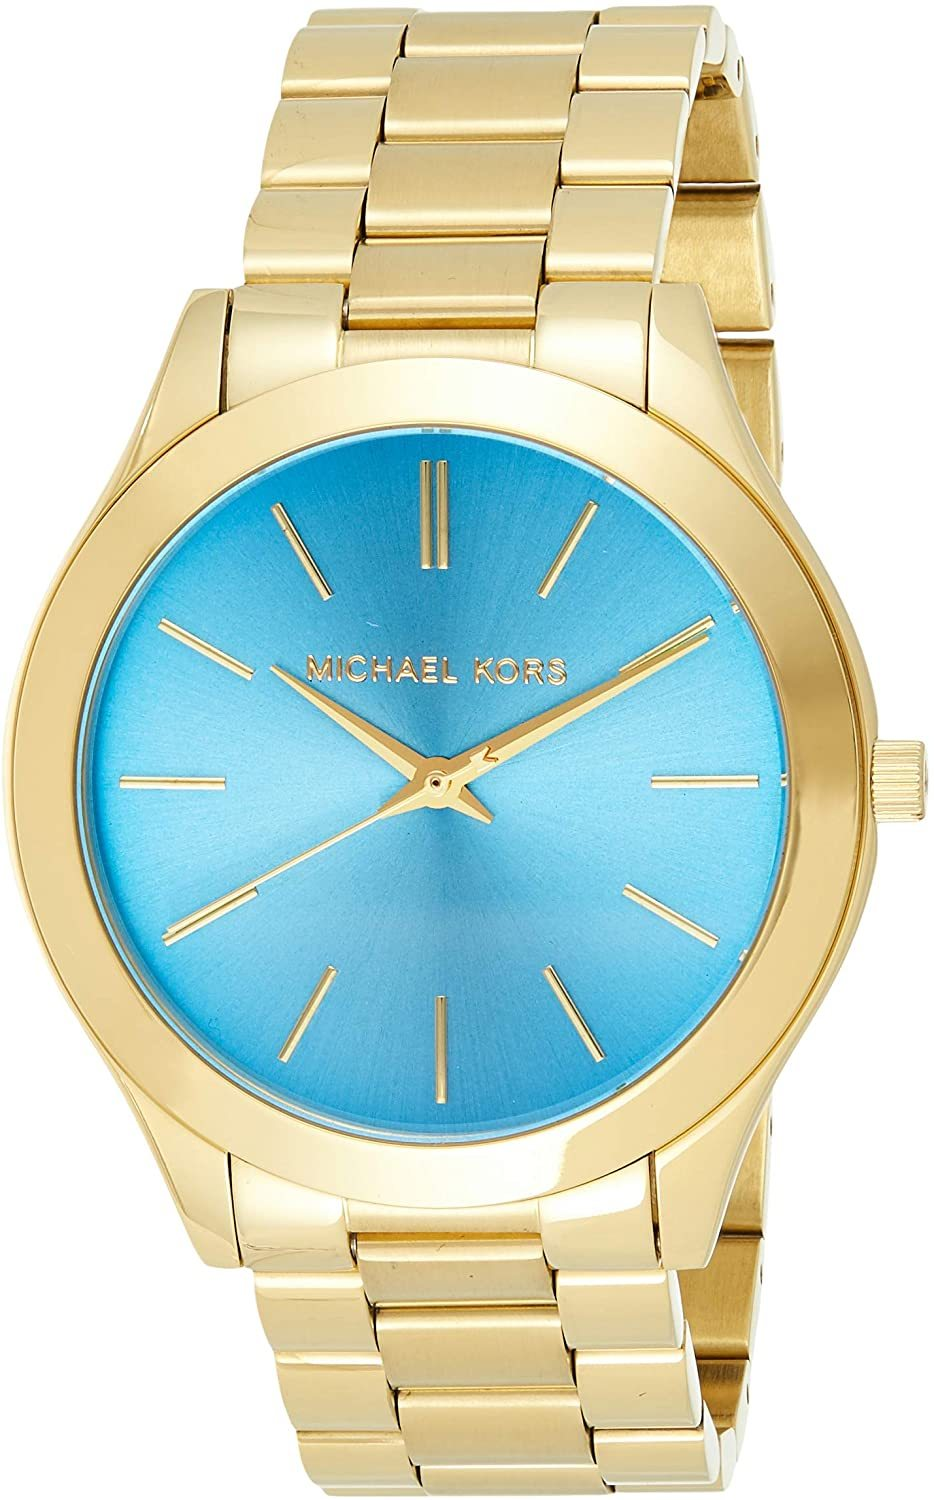 Primary image for  Michael Kors Slim Runway Rose Gold/Blue Ladies Watch MK3265 New With Tags